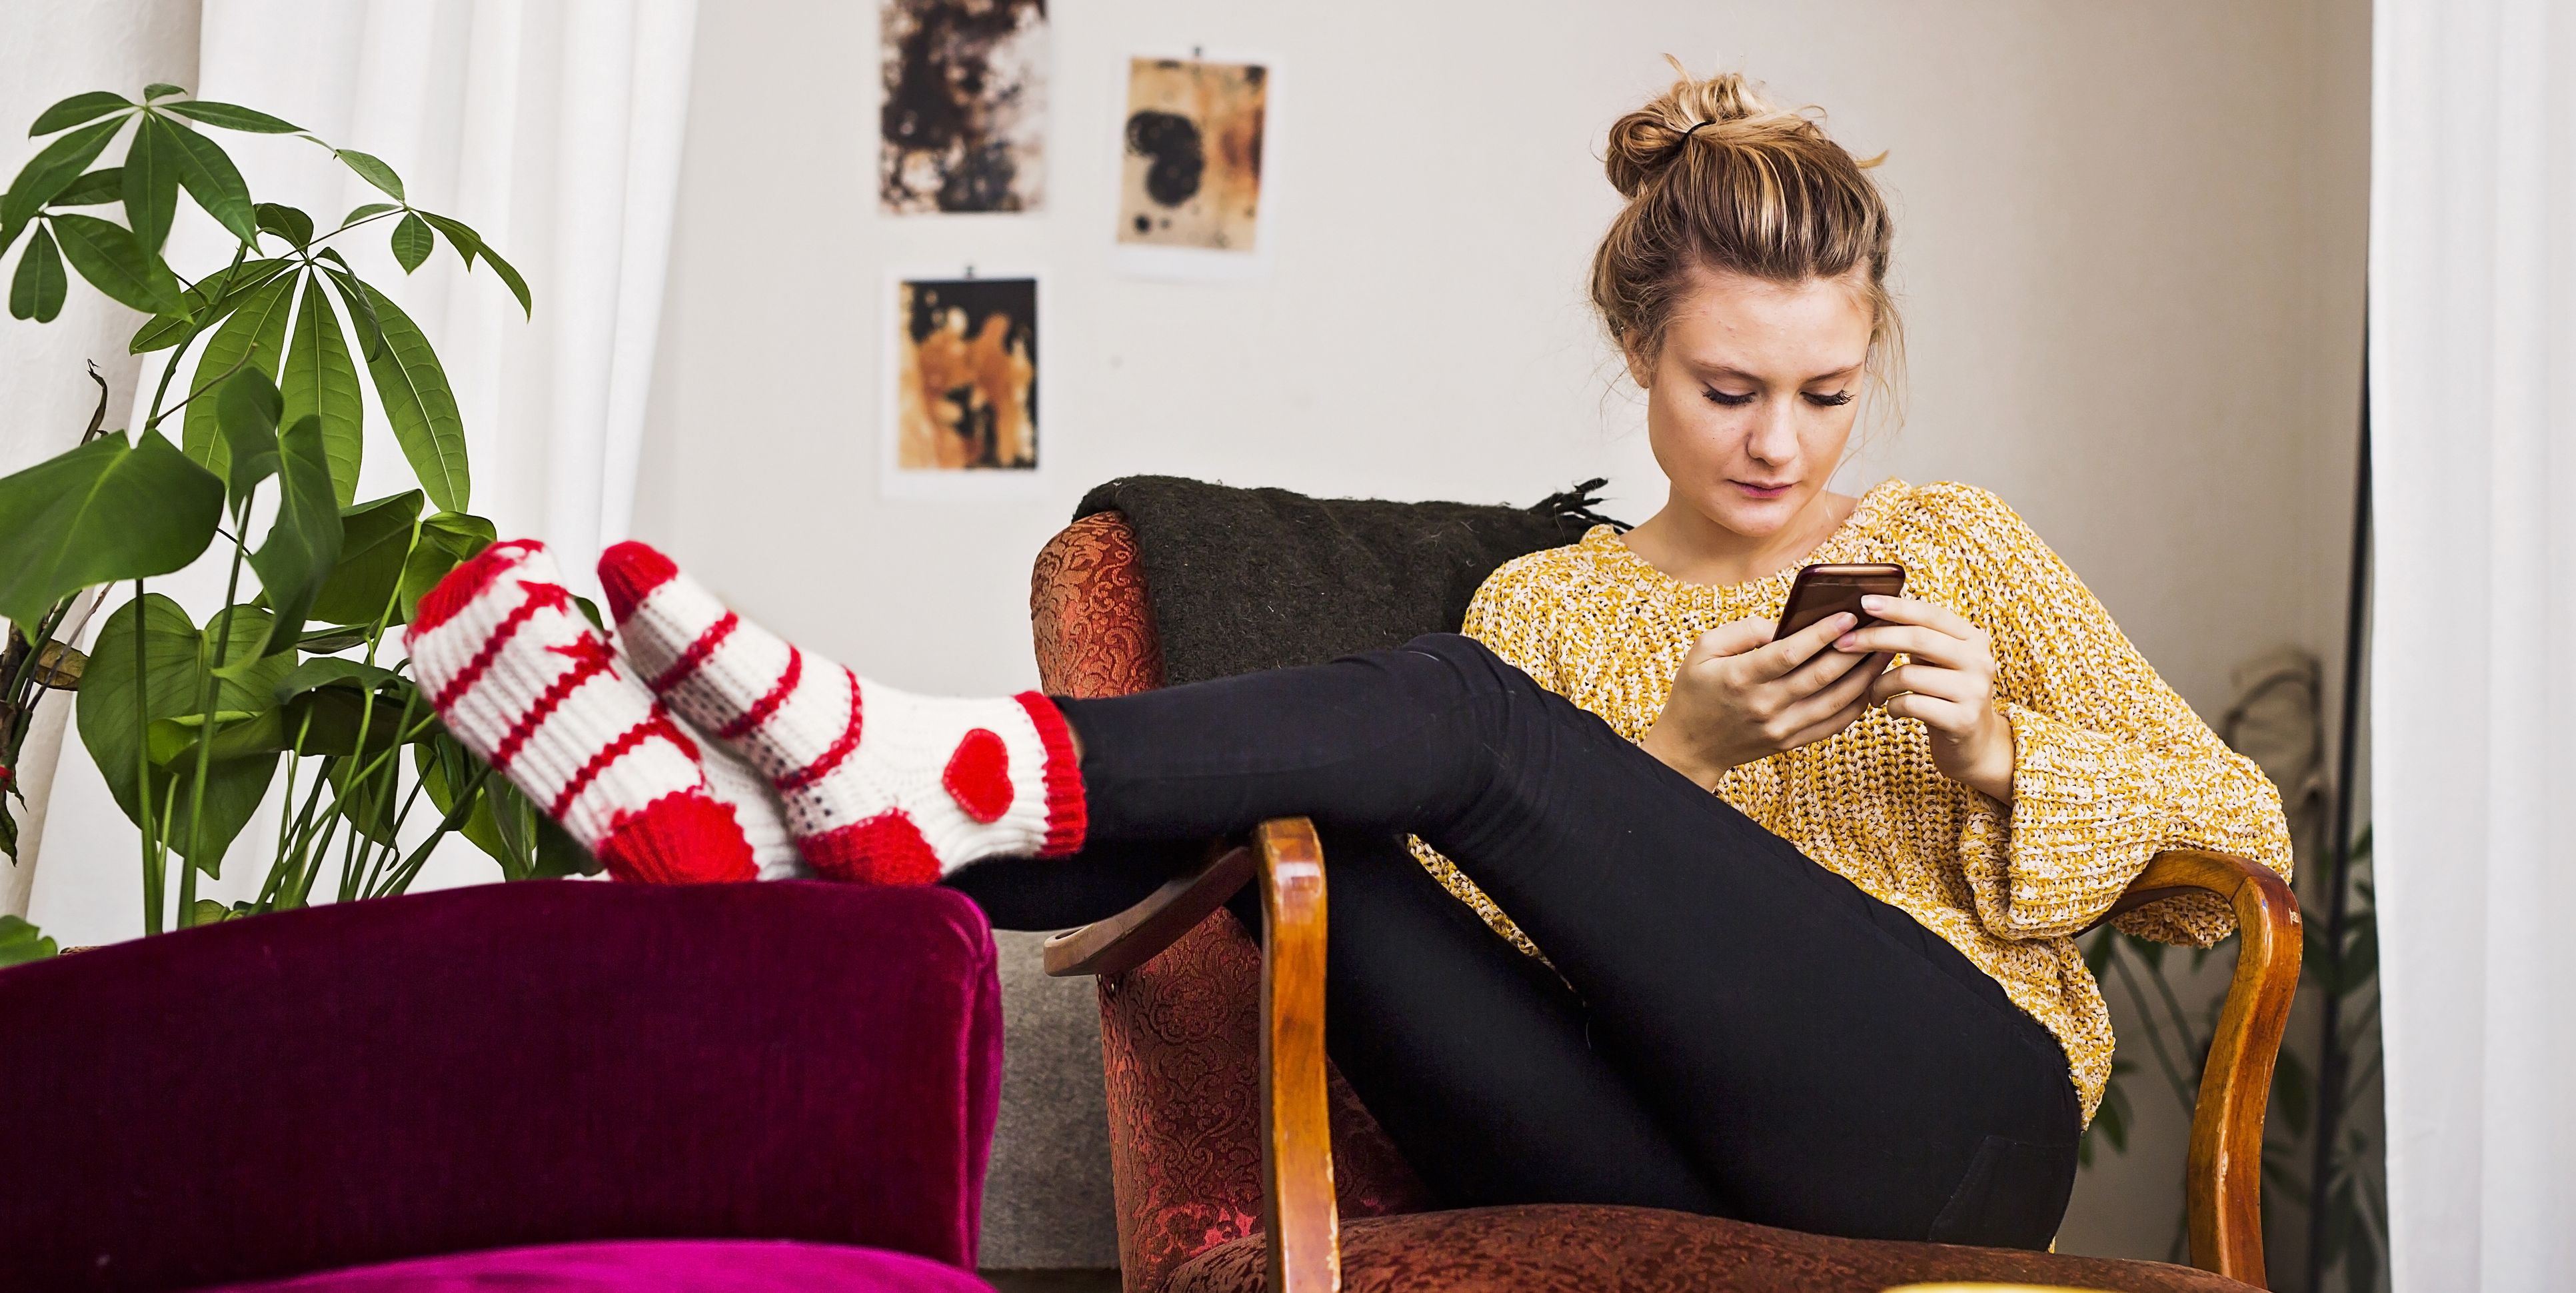 Woman using phone while resting on chair at home